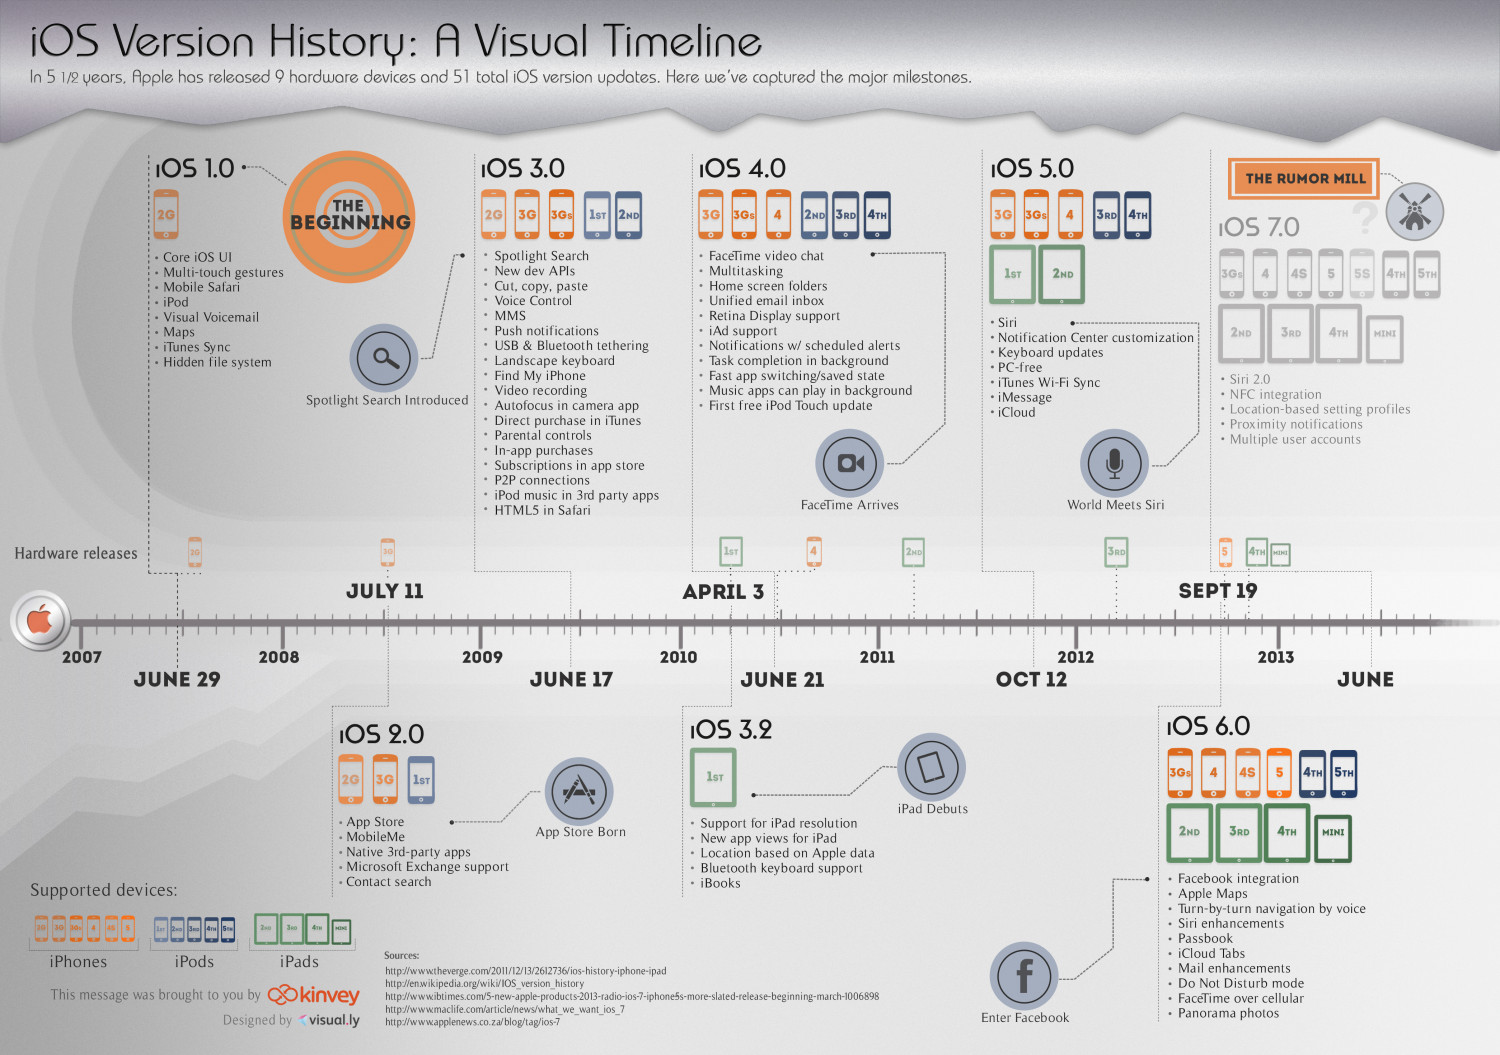 iOS Version History: A Visual Timeline Infographic